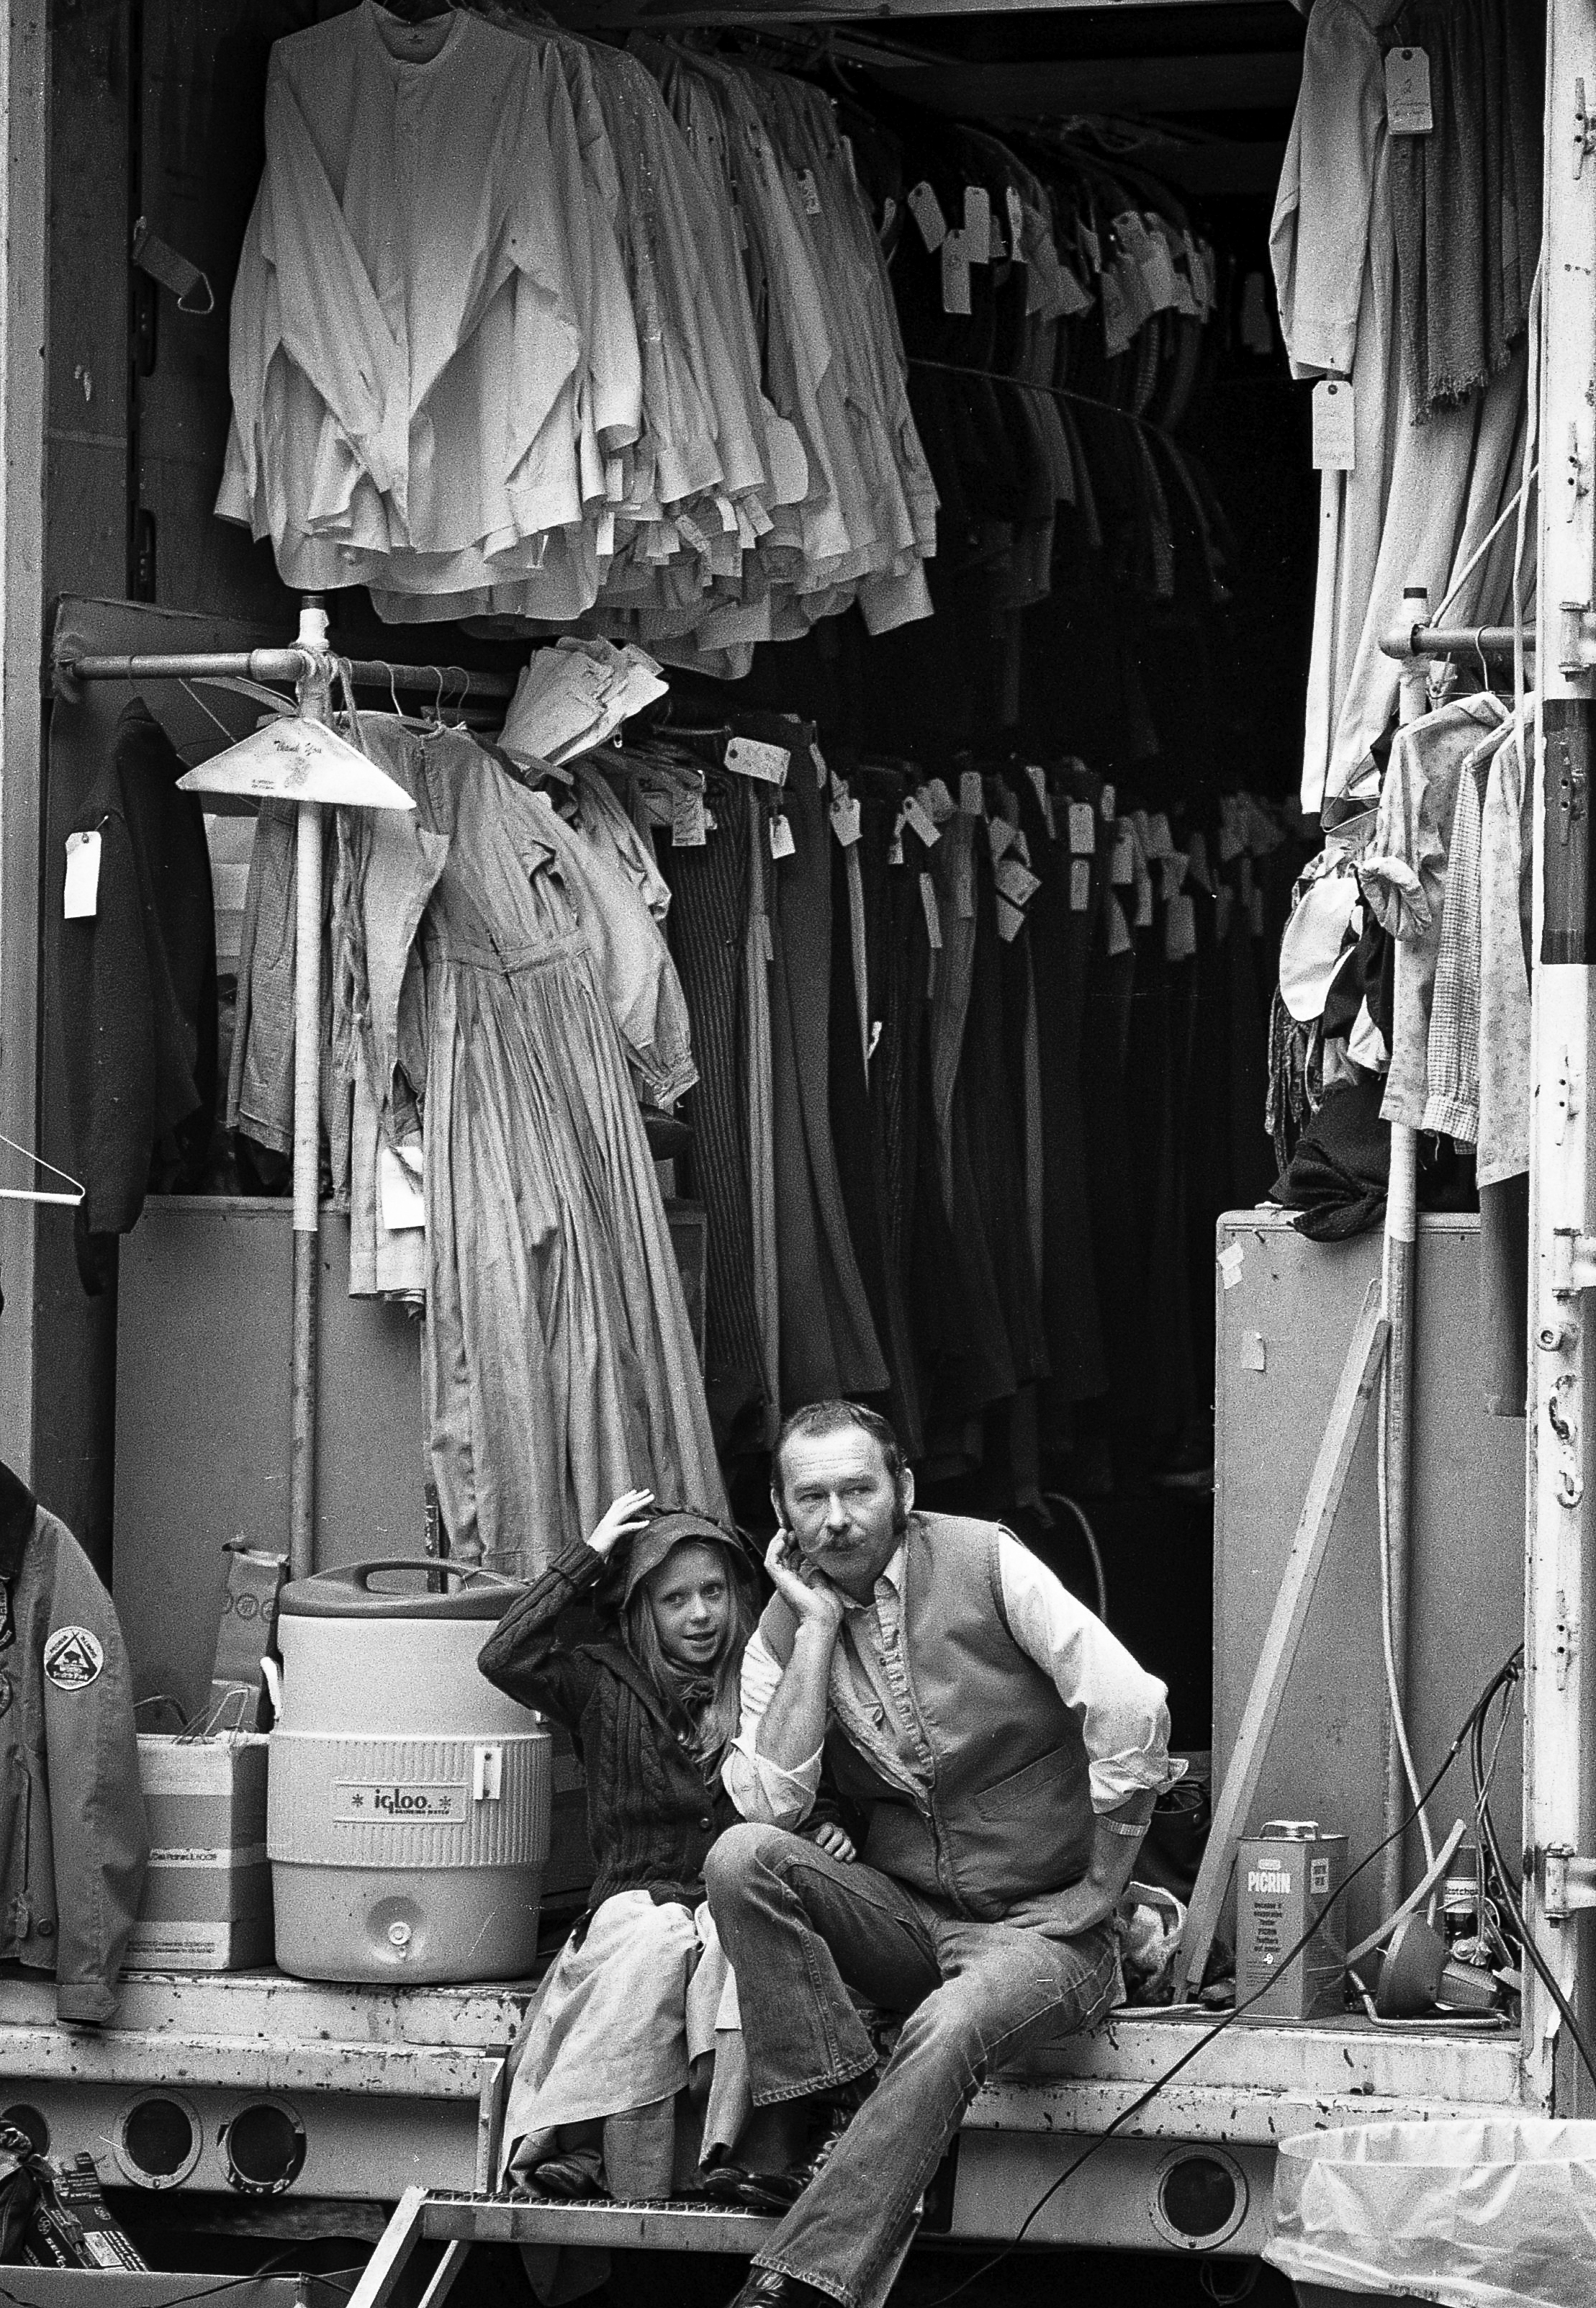 """Joe Caswell and his daughter, Sandy, sit in the wardrobe truck during filming of the television mini series """"The Chisholms"""" at New Salem State Historic Site, October 2, 1978. File/Bill Hagen/The State Journal-Register"""